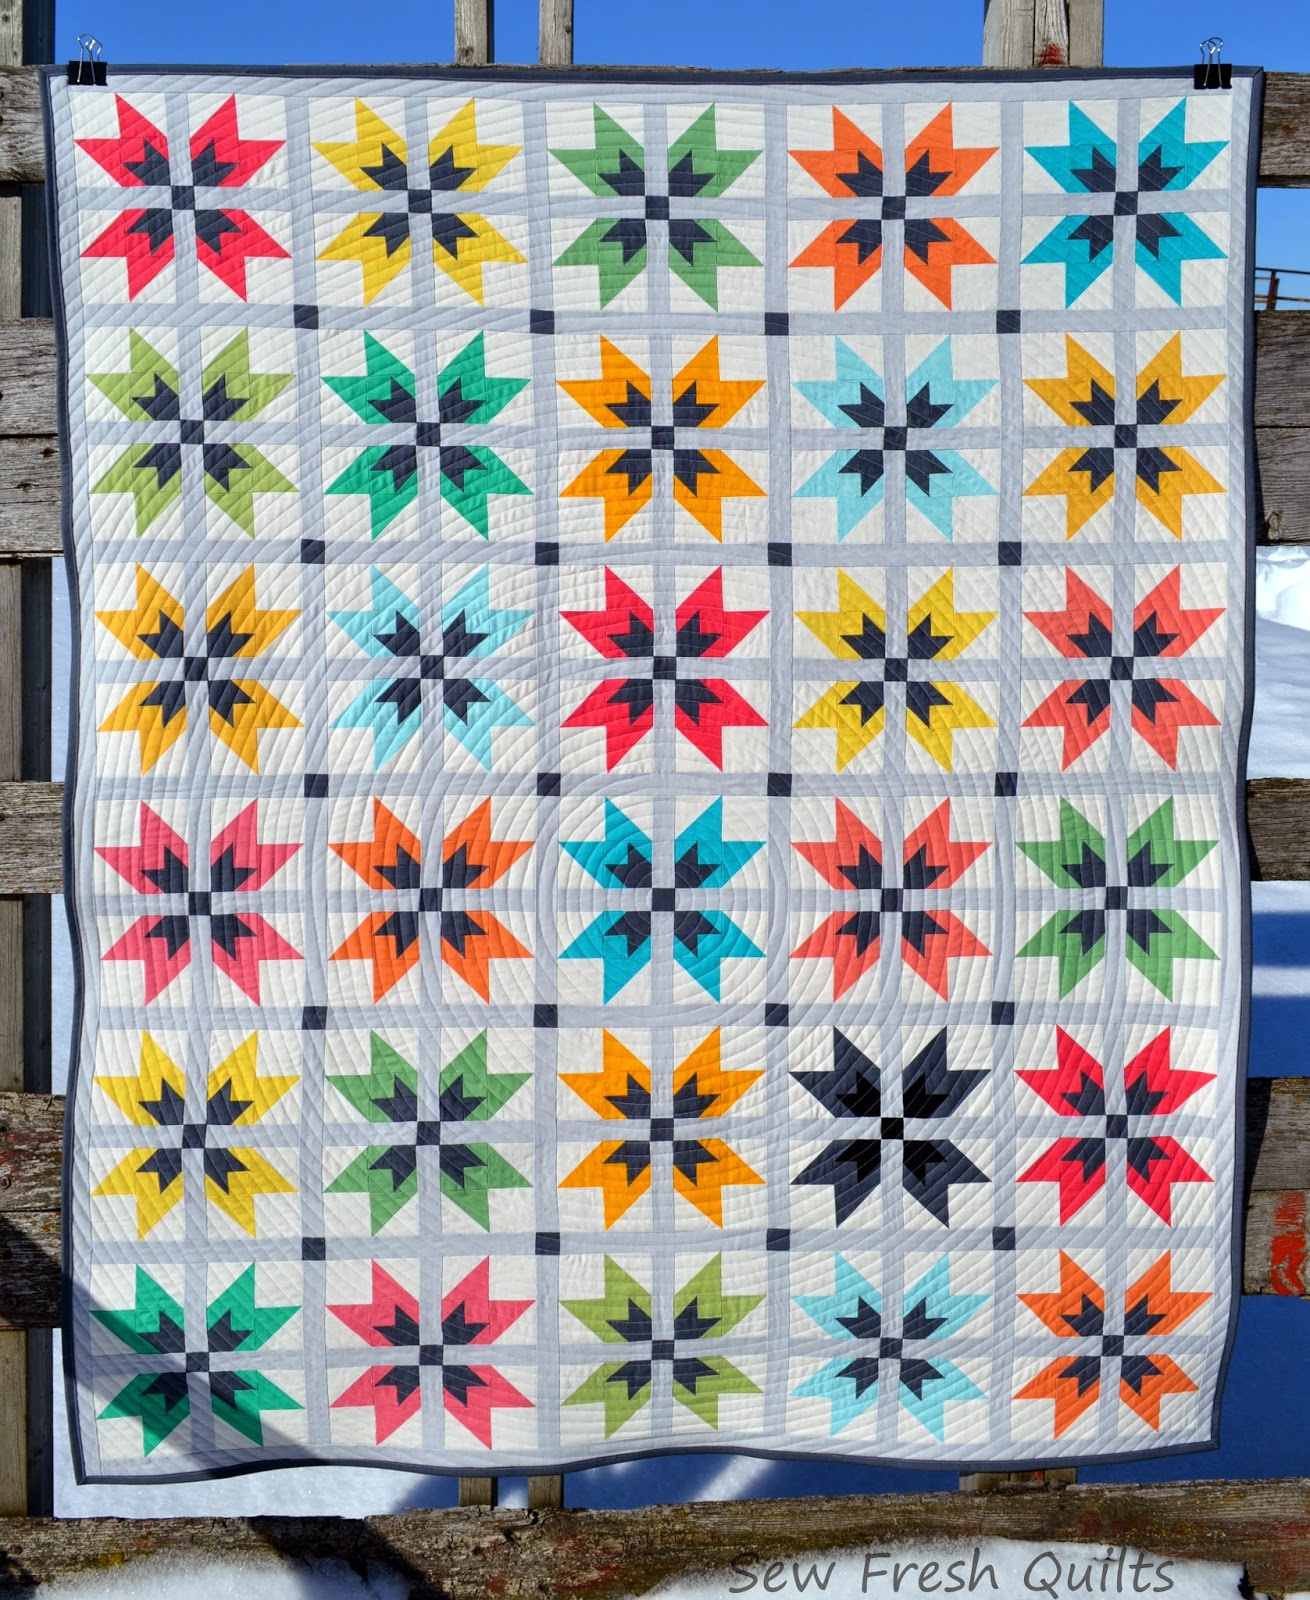 http://sewfreshquilts.blogspot.ca/2015/02/wow-e-custom-quilt.html